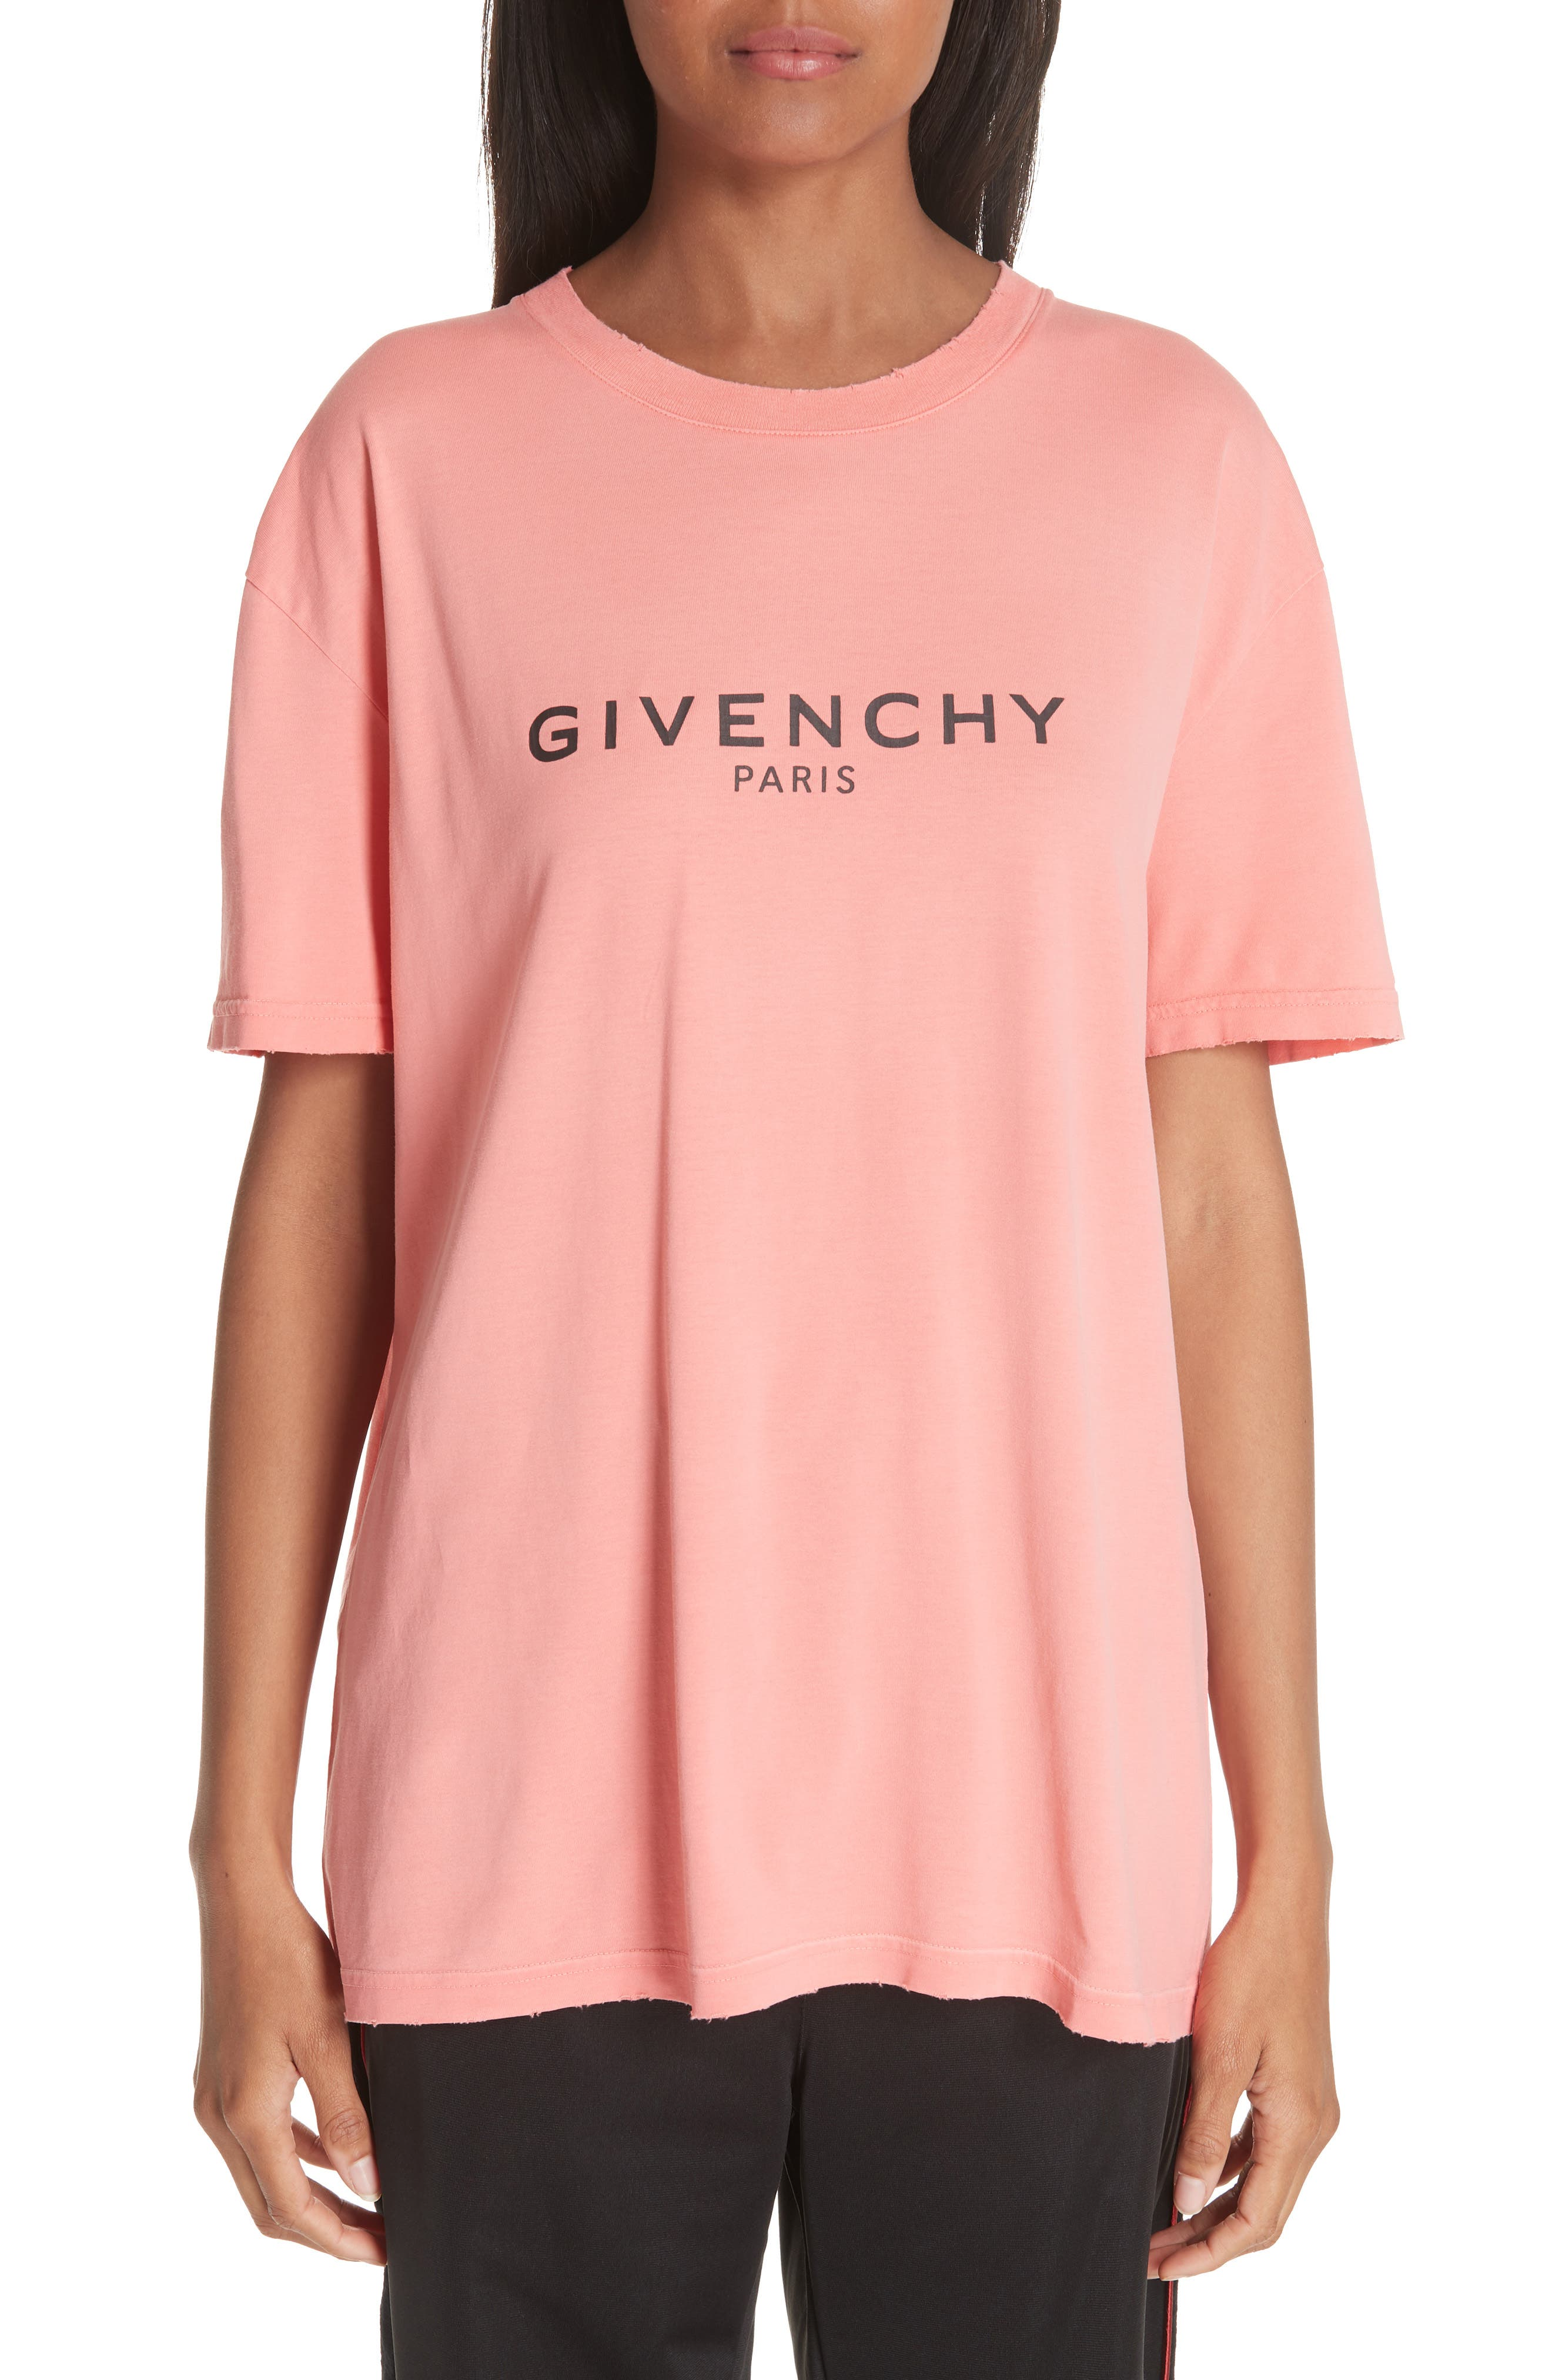 982eddca Women's Givenchy Clothing | Nordstrom